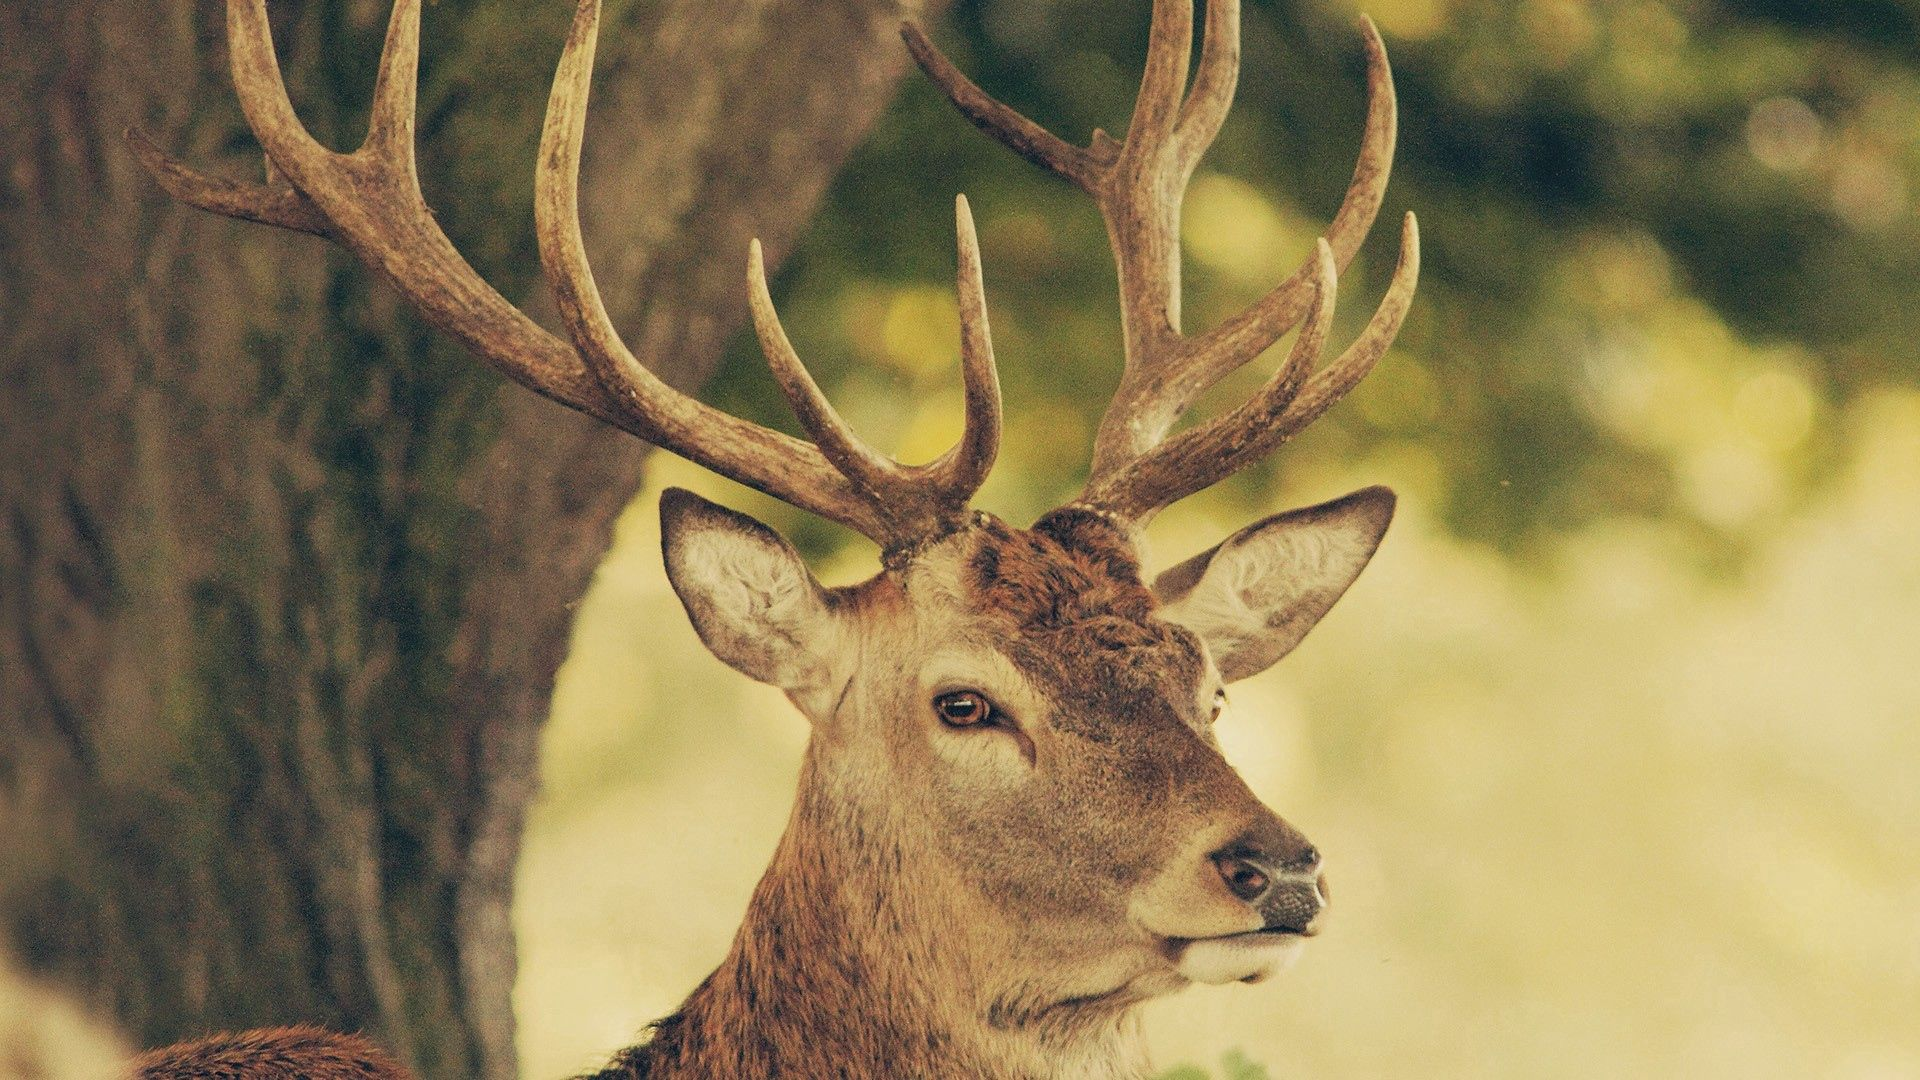 112935 download wallpaper Animals, Deer, Muzzle, Horns, Nature screensavers and pictures for free